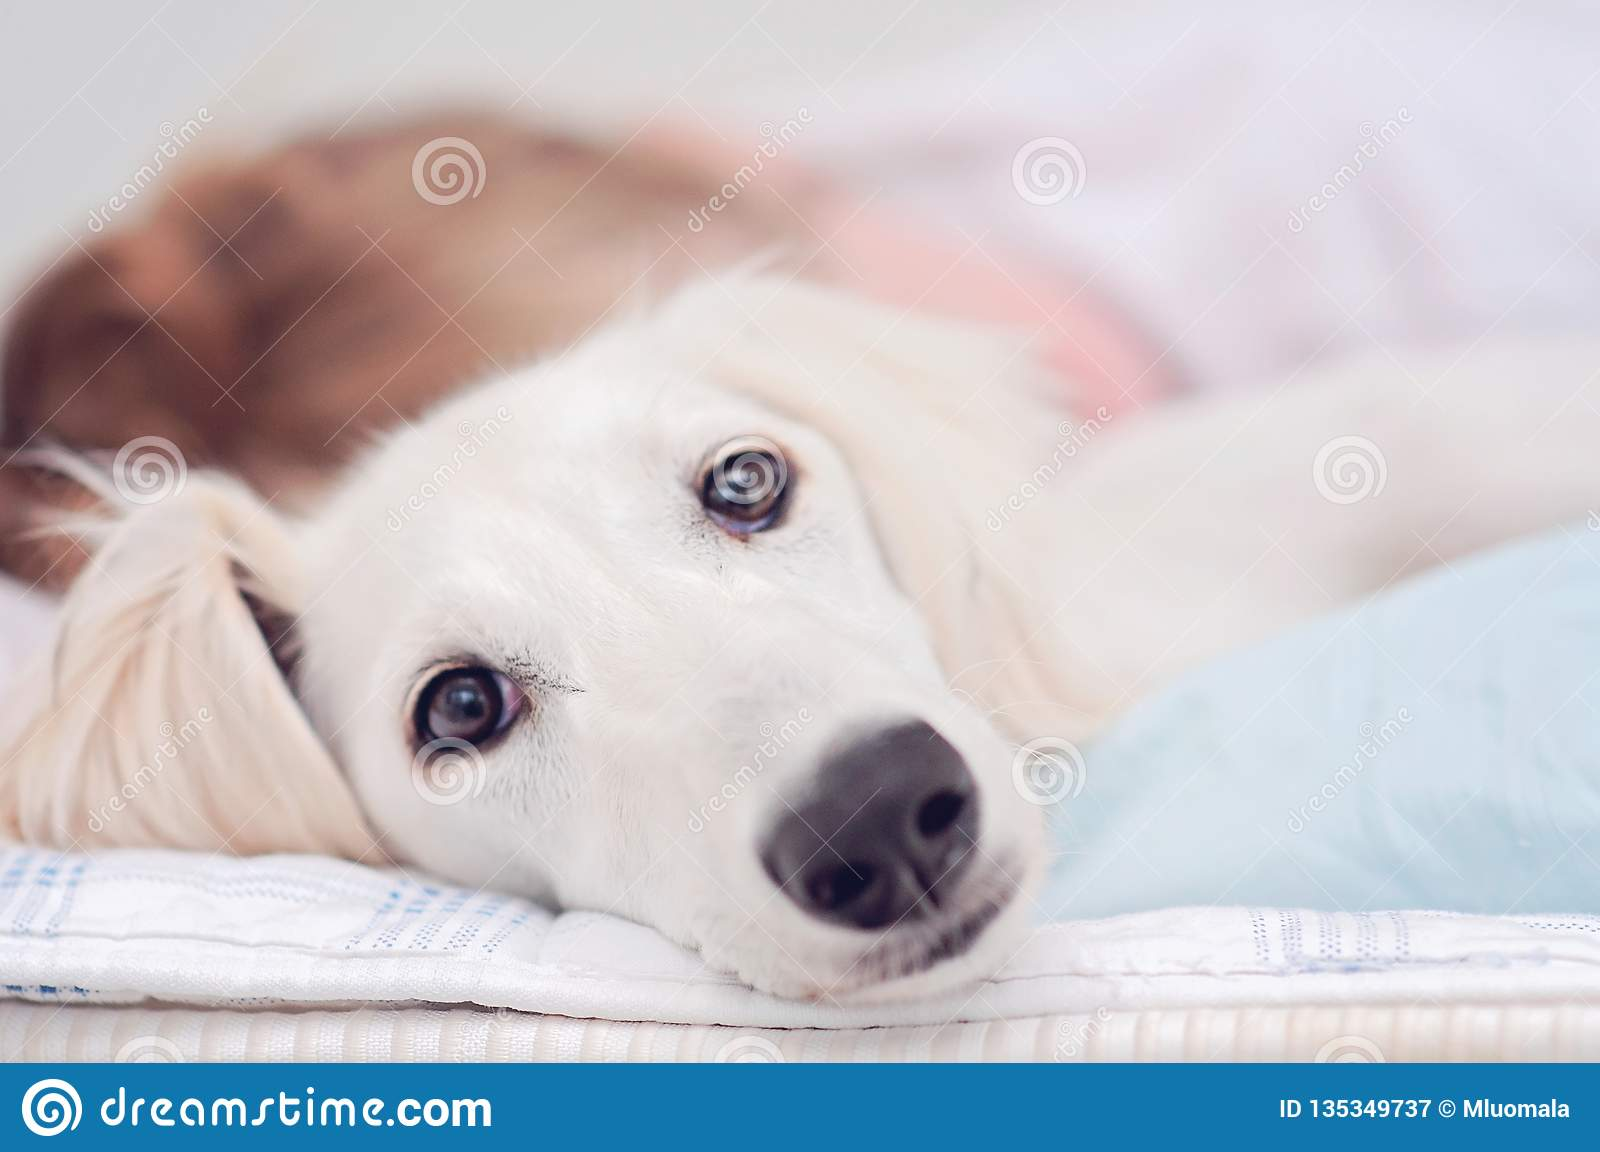 A closeup of a relaxed dog, little cute white saluki puppy persian greyhound together with a young girl who owns the pet. A